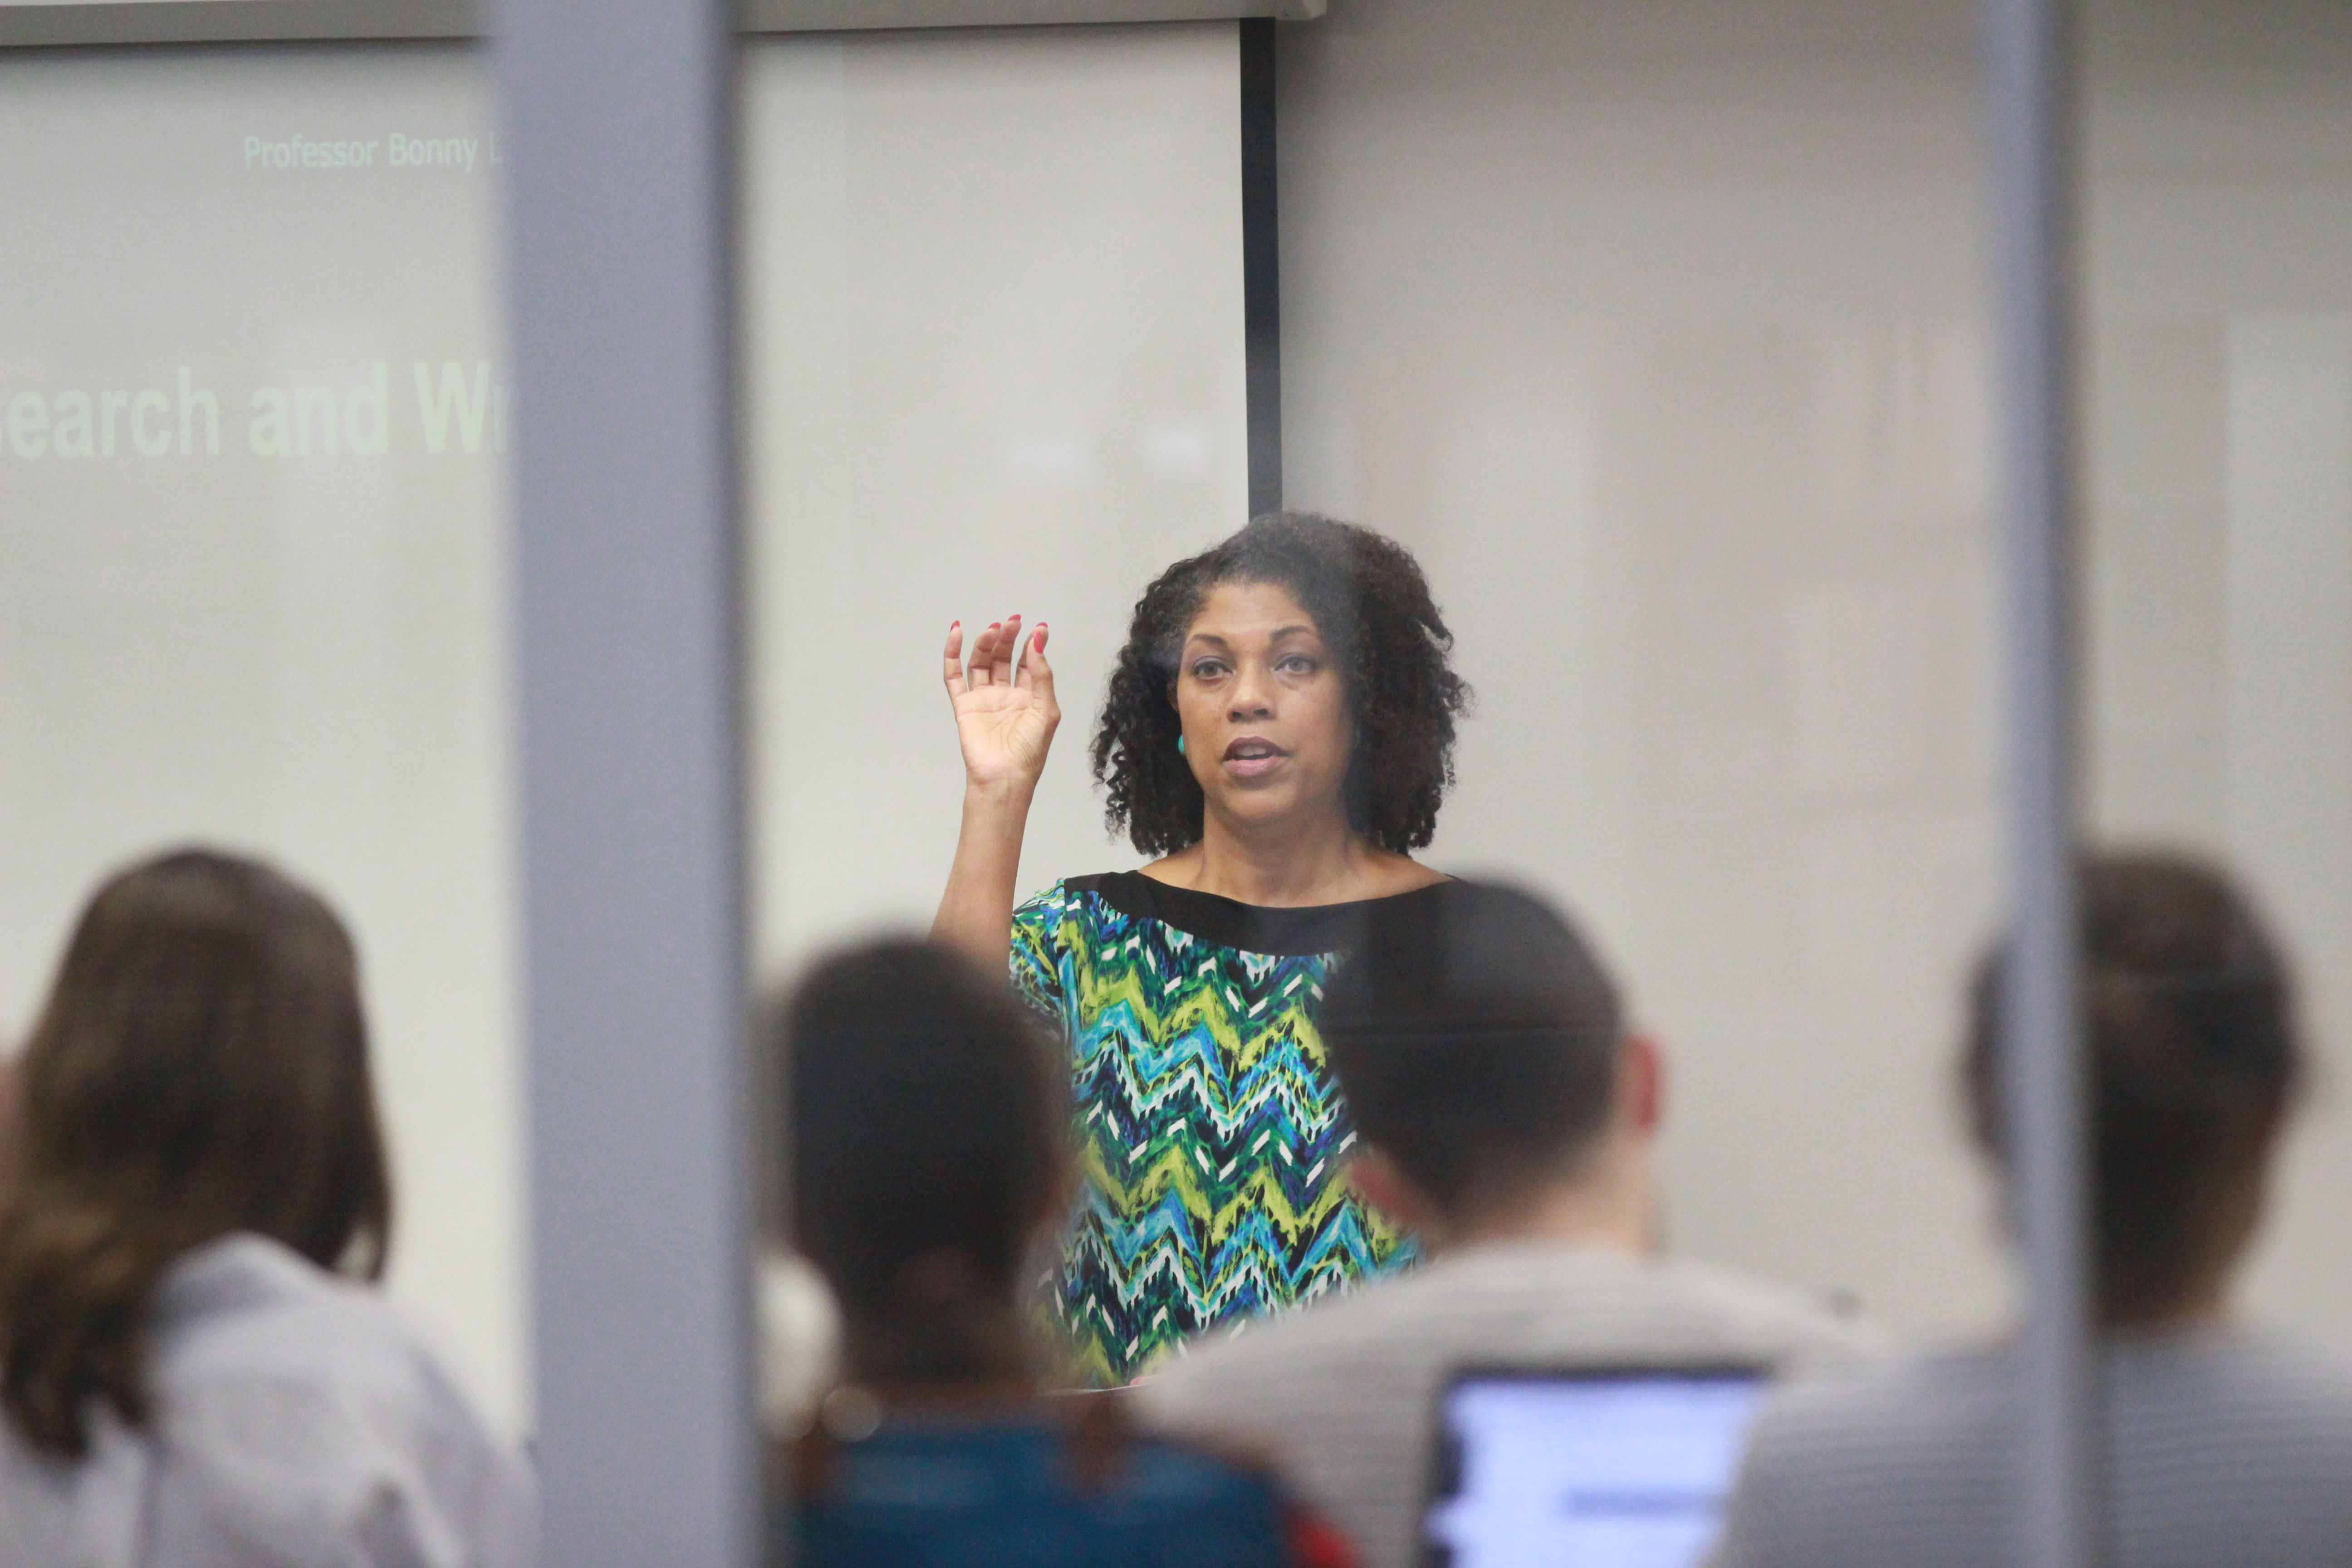 Professor Bonny Tavares teaches the fundamentals of legal research and writing.